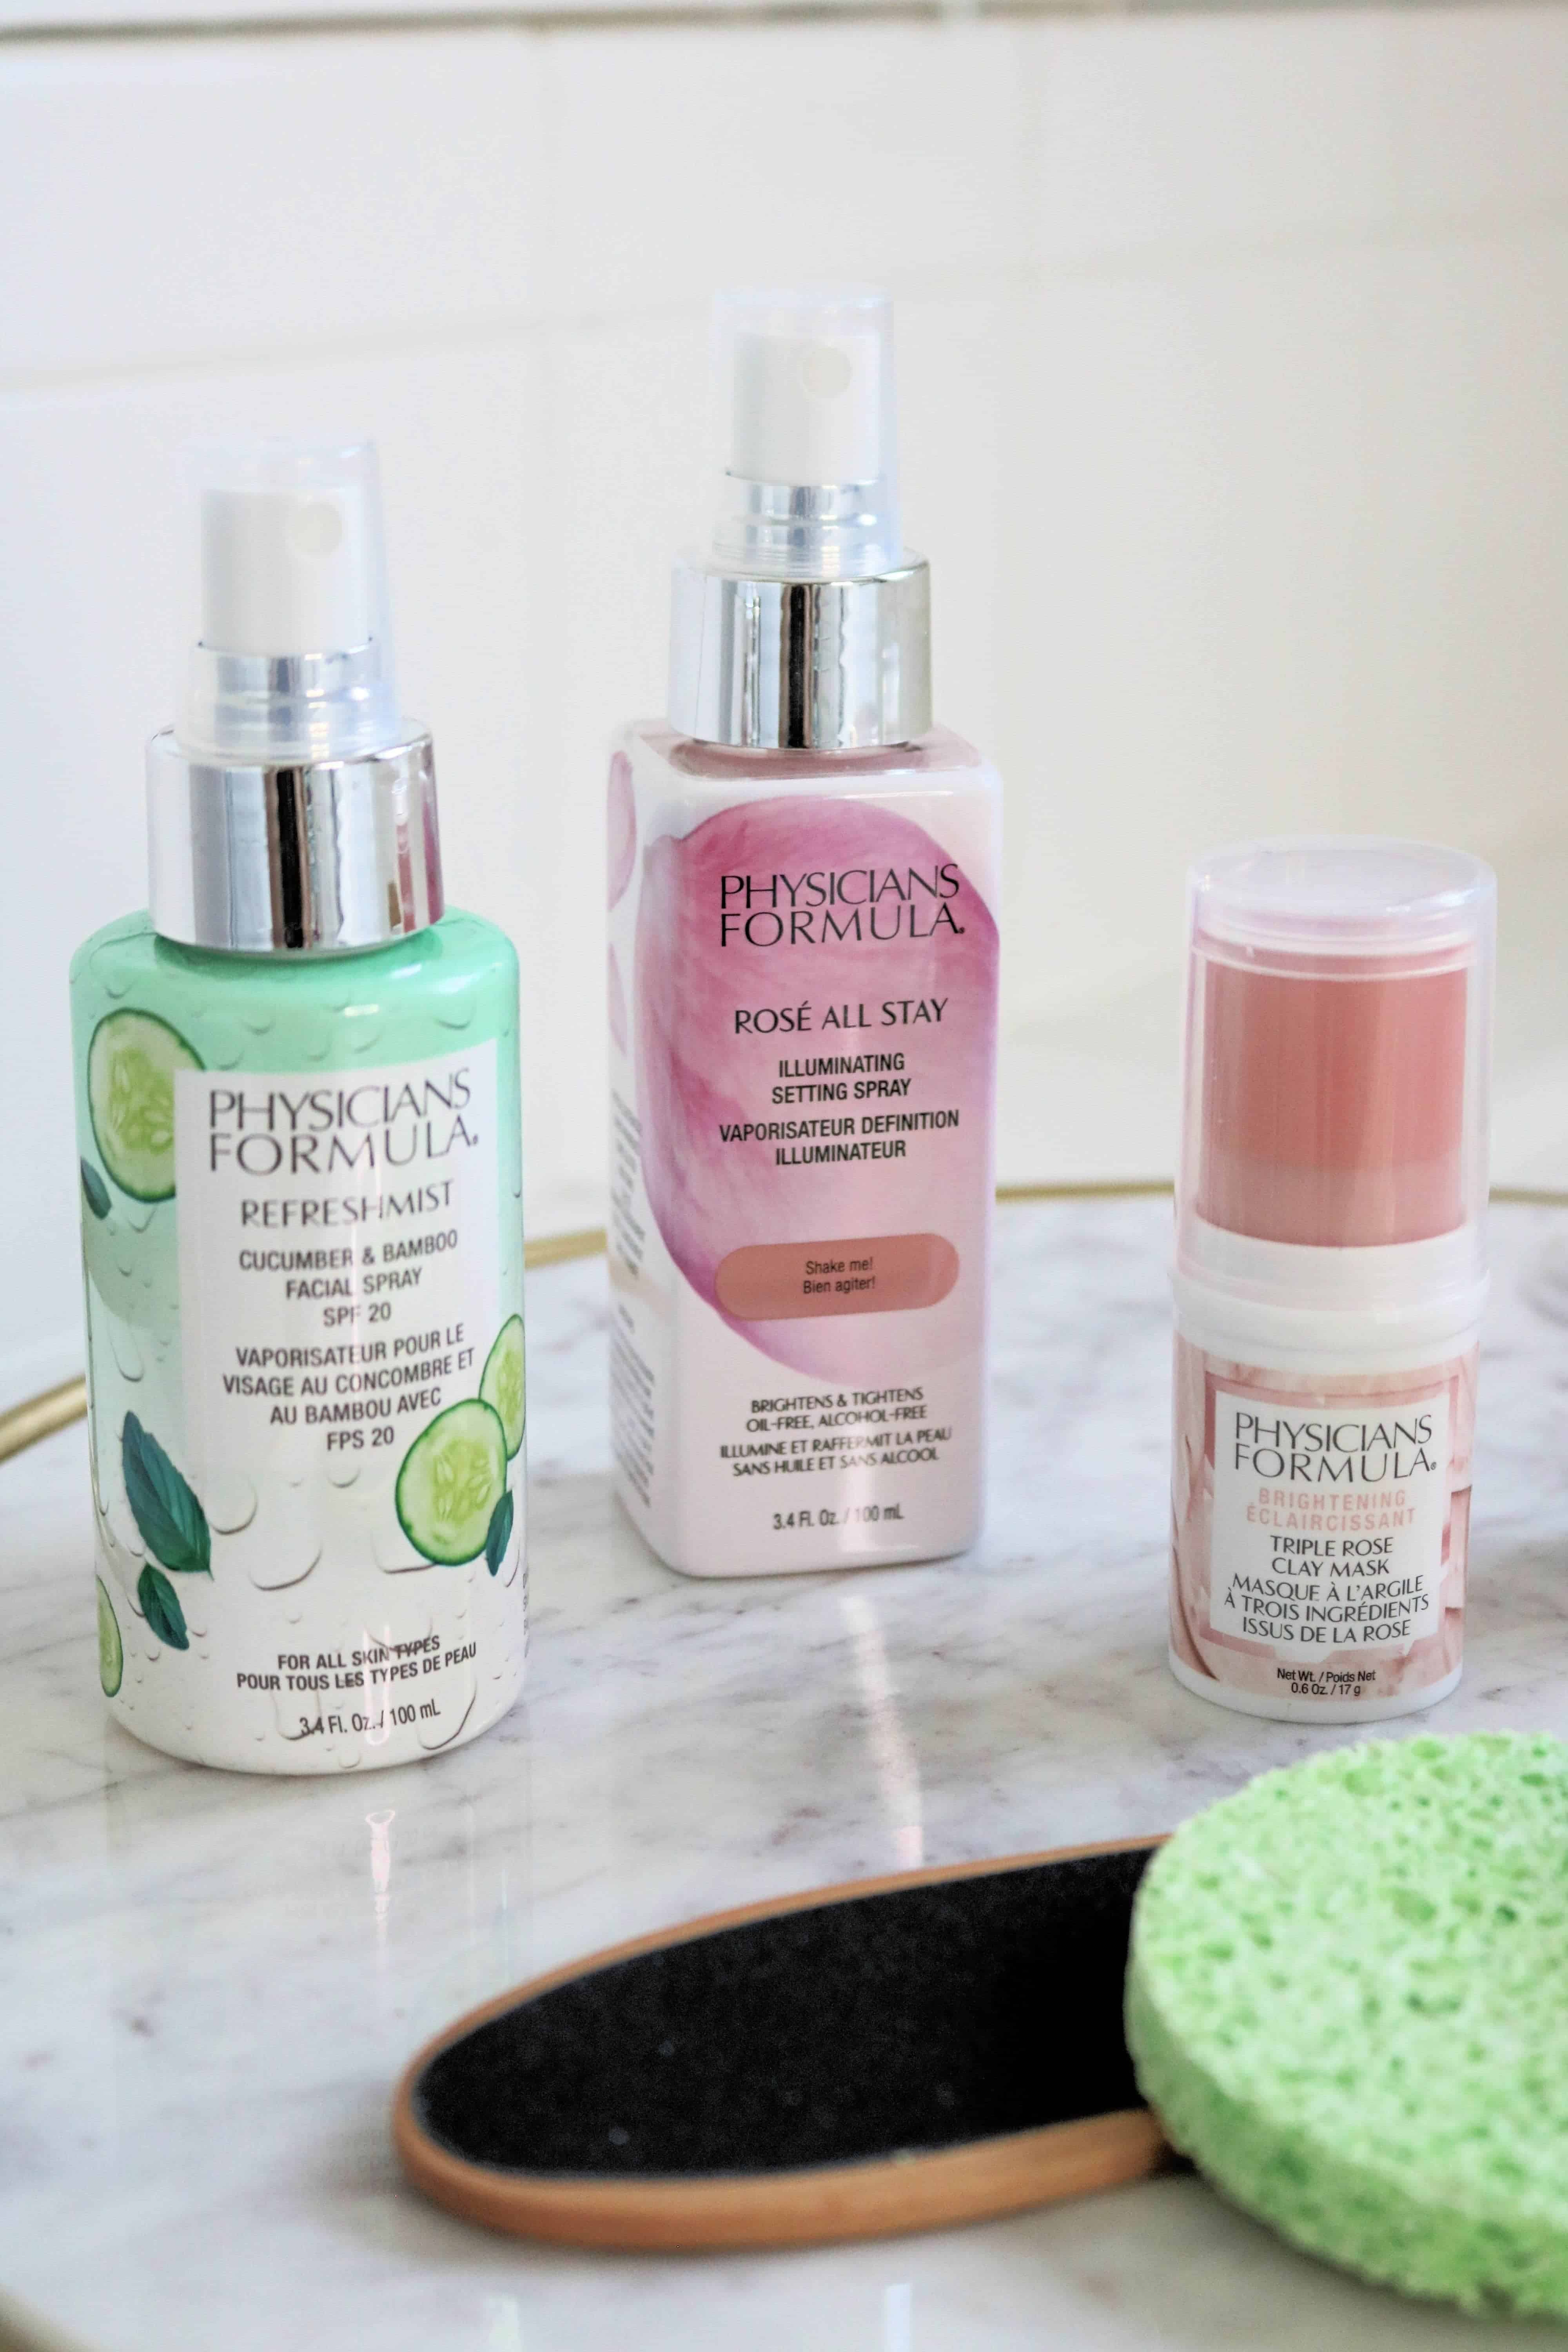 Pamper yourself at home with these new + affordable beauty products from Physicians Formula! These drugstore beauty and skincare products are perfect for a relaxing evening or weekend when you want to treat your skin to a little extra TLC. #ad #physiciansformula #skincare #drugstorebeauty